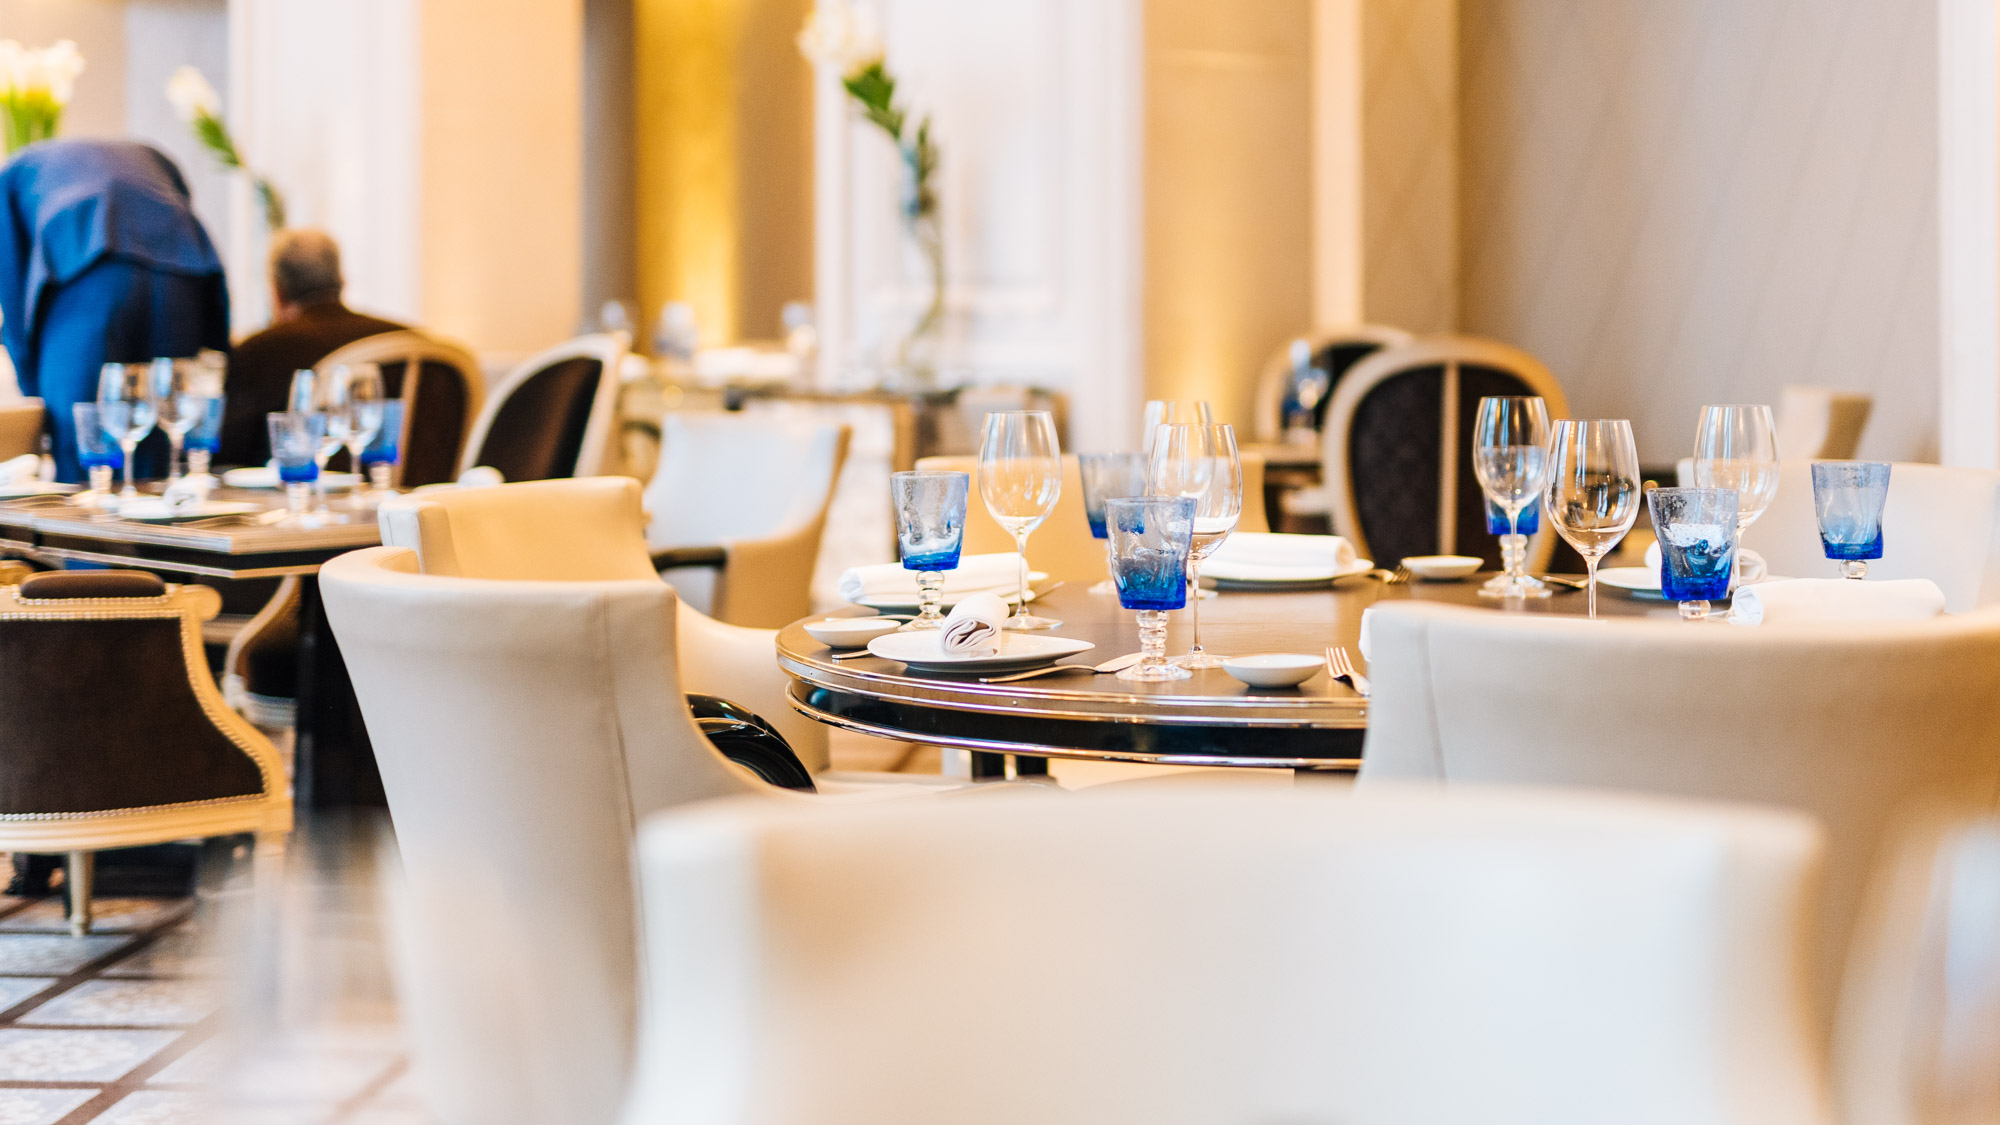 Salle A Manger Paris le george restaurant: lunch time inside the beautiful four